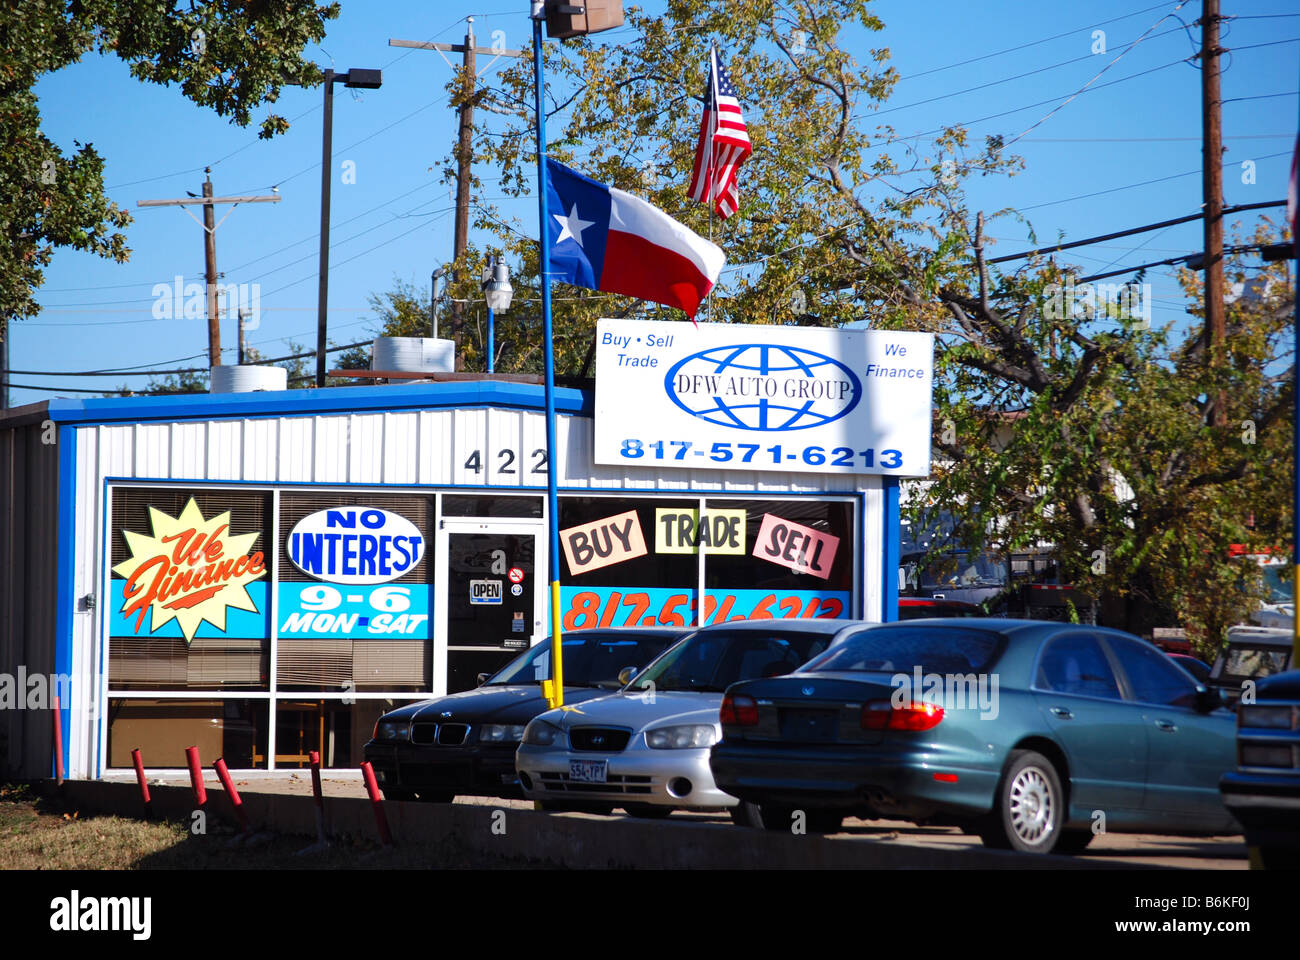 Auto Dealerships For Sale In Texas: Car Dealership Flag Stock Photos & Car Dealership Flag